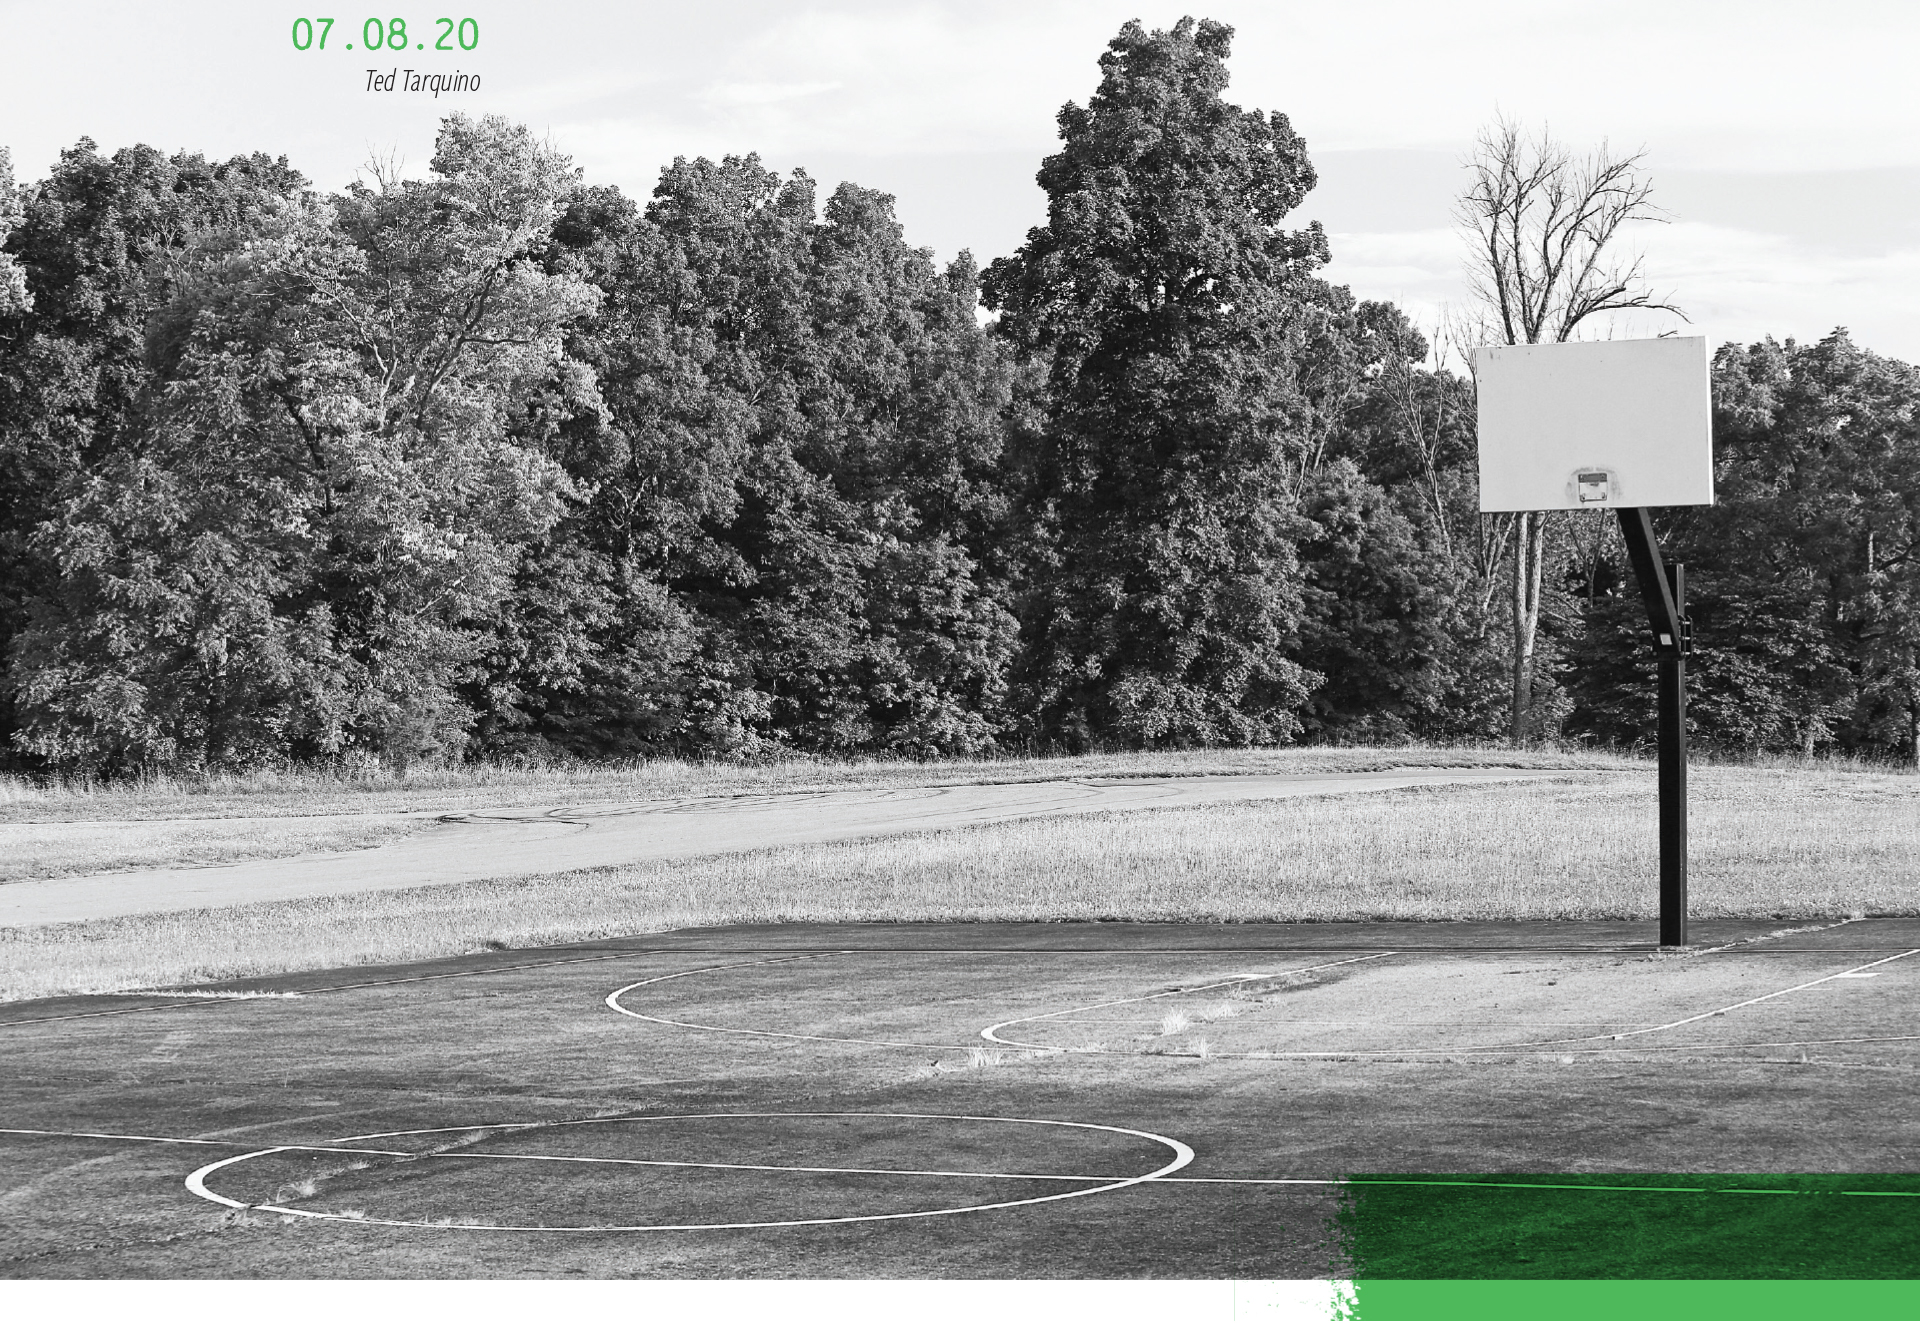 An empty basketball court at a park, 07.08.2020, by Ted Tarquinio